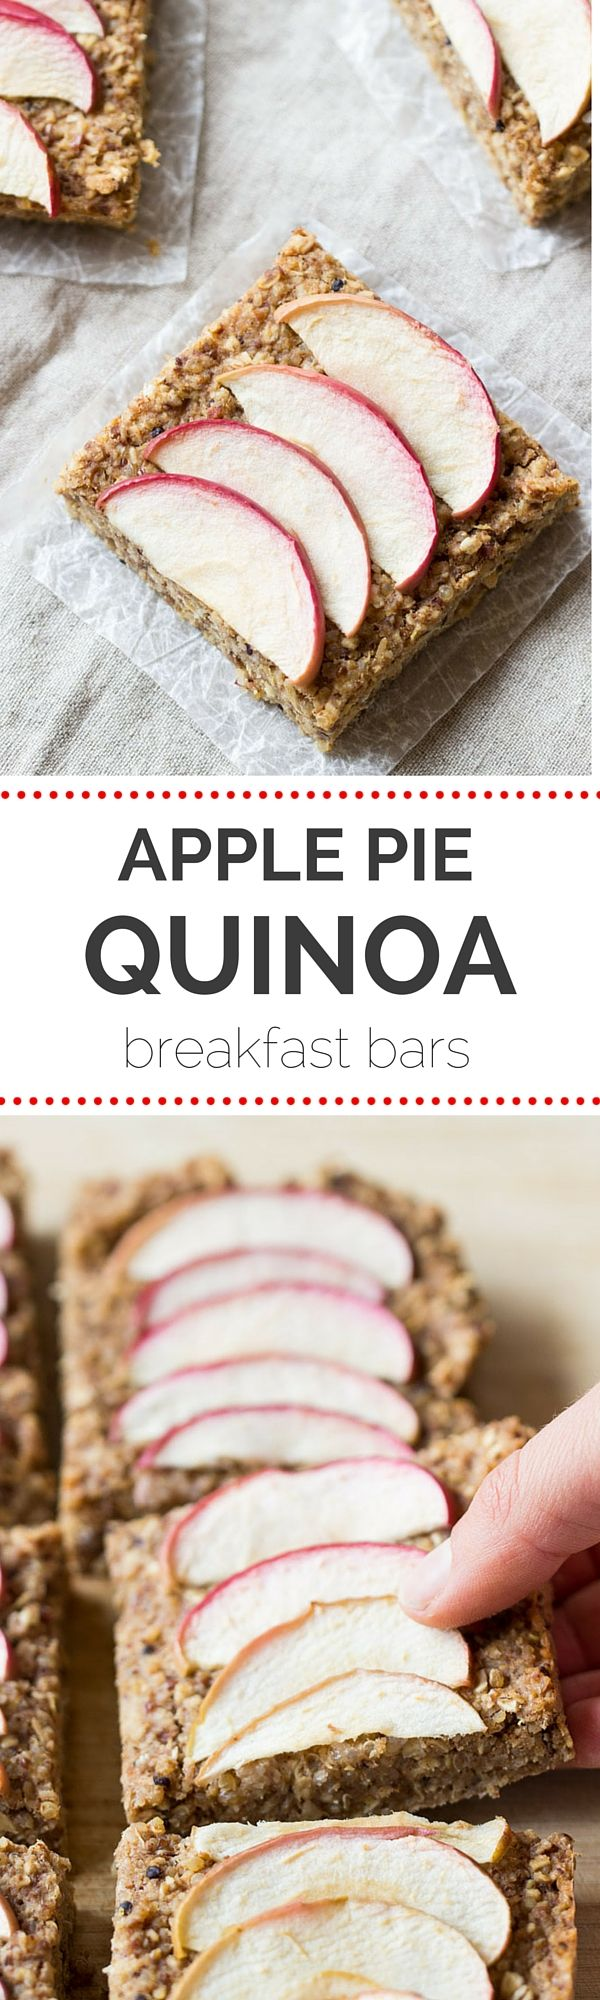 Apple Pie Quinoa Breakfast Bars -- they taste like decadent apple pie, but are actually a healthy breakfast treat. Plus they're gluten-free + vegan!